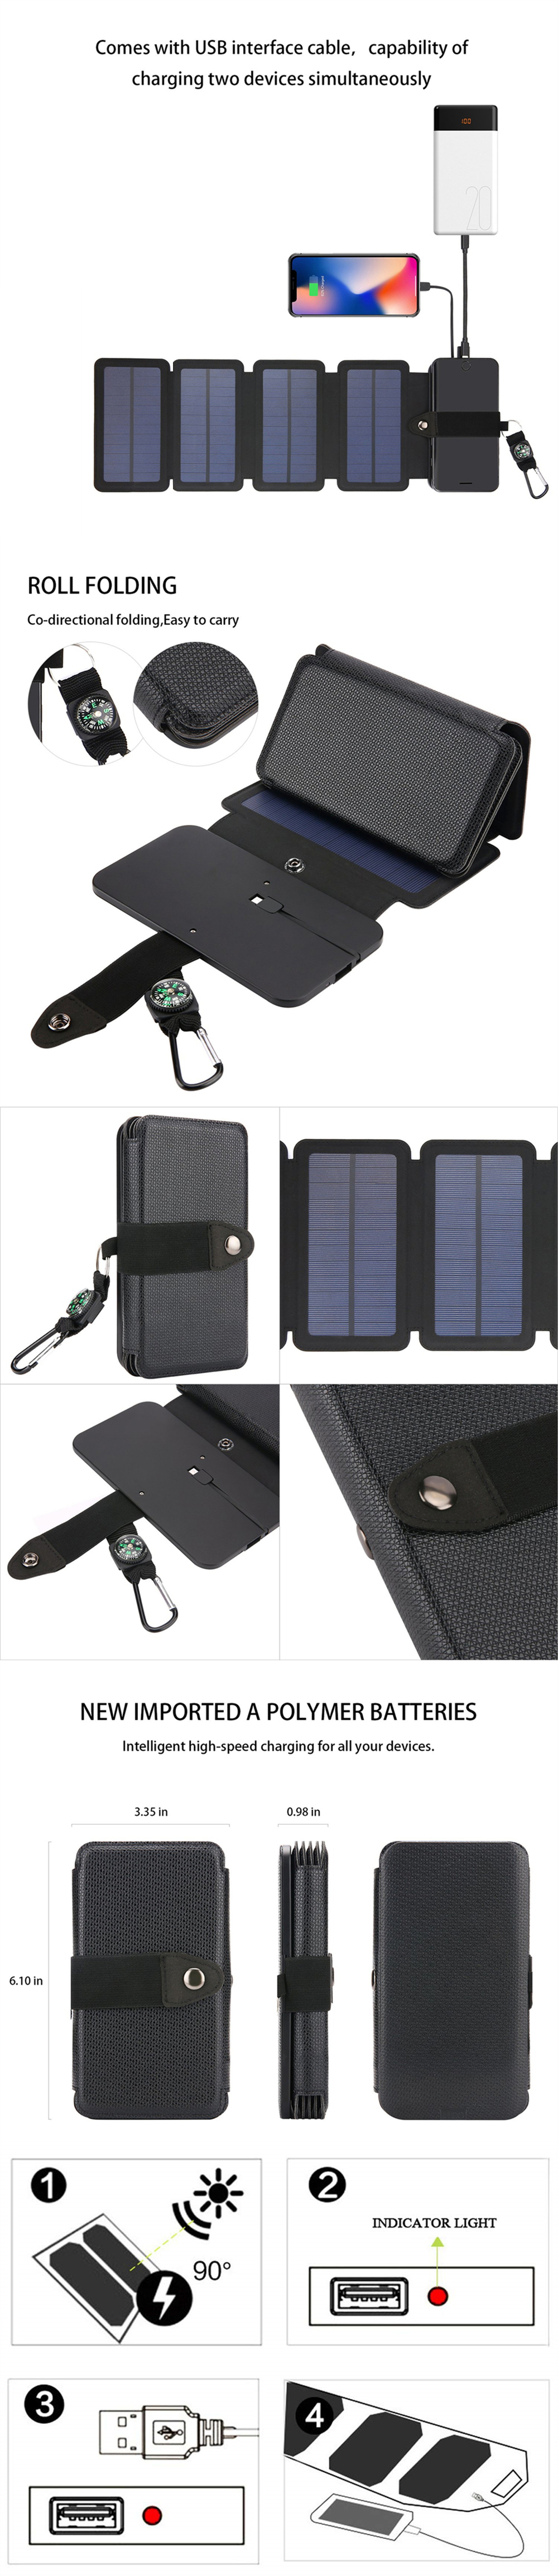 Minismile 7W Portable Solar Charging Panel Removable Folding Charger for Phone - Black